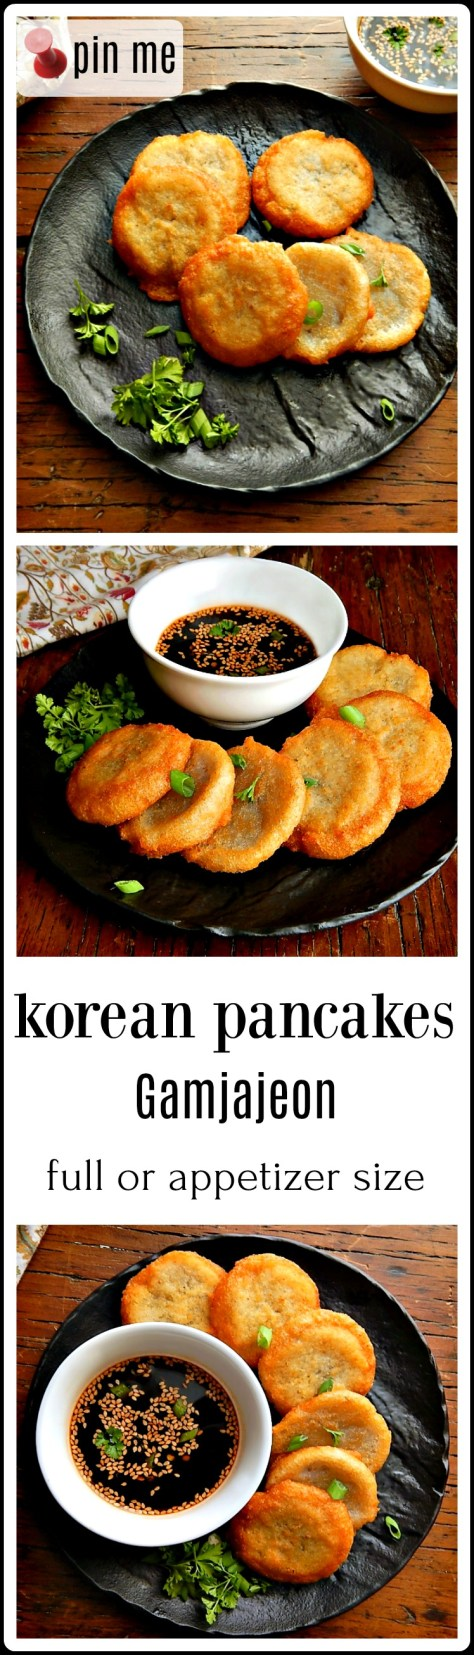 Korean Pancakes - crispy, crunchy deliciousness with a creamy center. Like the best latkes, ever!